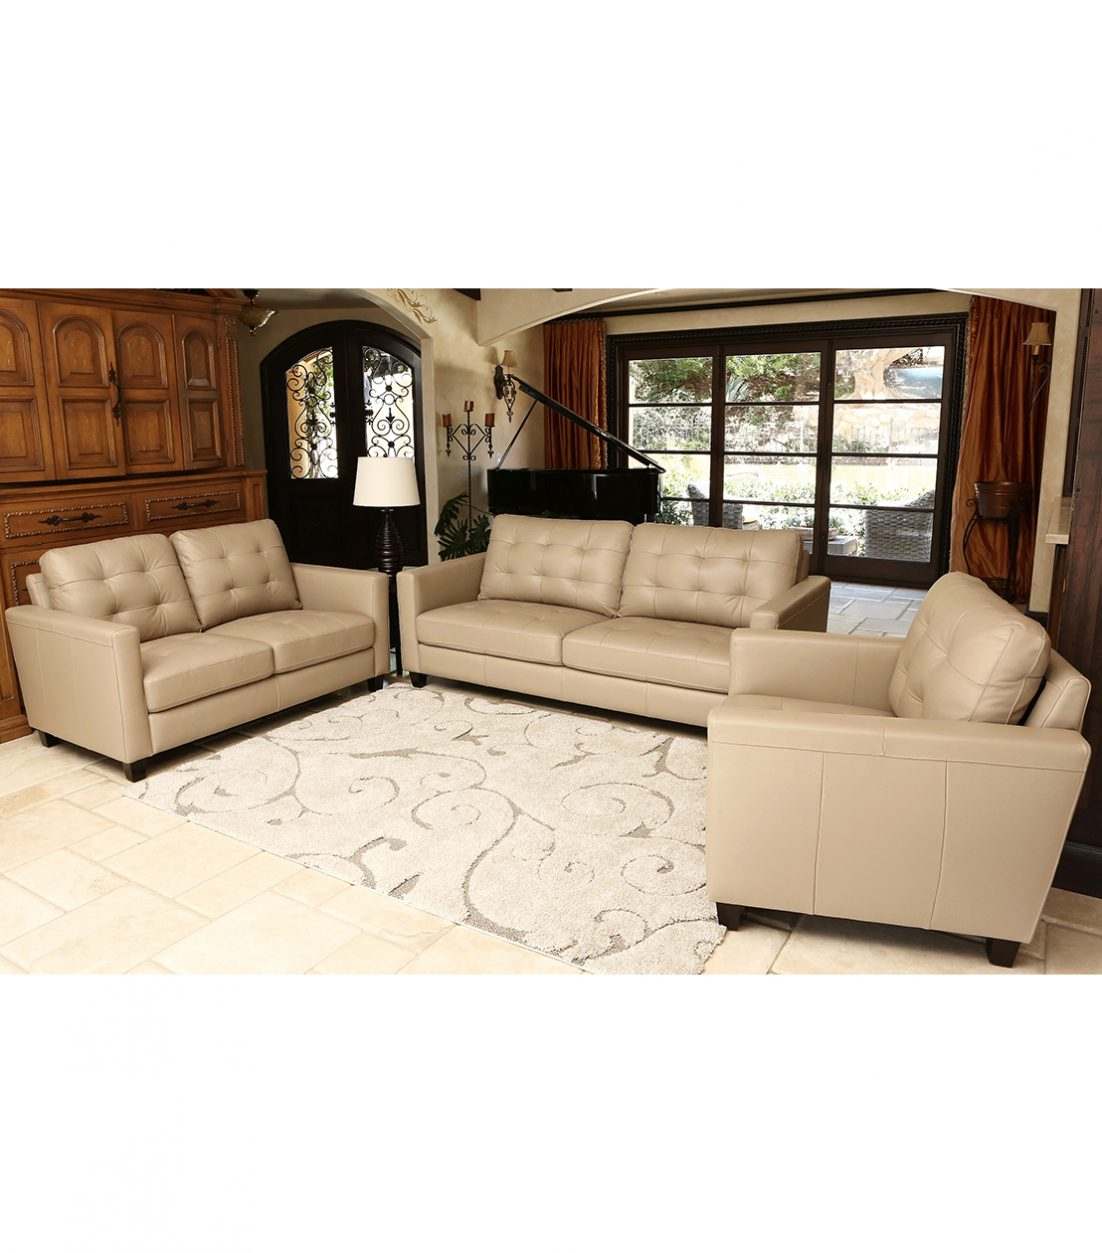 3 Piece Living Room Set Casta Products Pinterest Sofa And Small With Mcdade Ash Sofa Chairs (Photo 8 of 25)